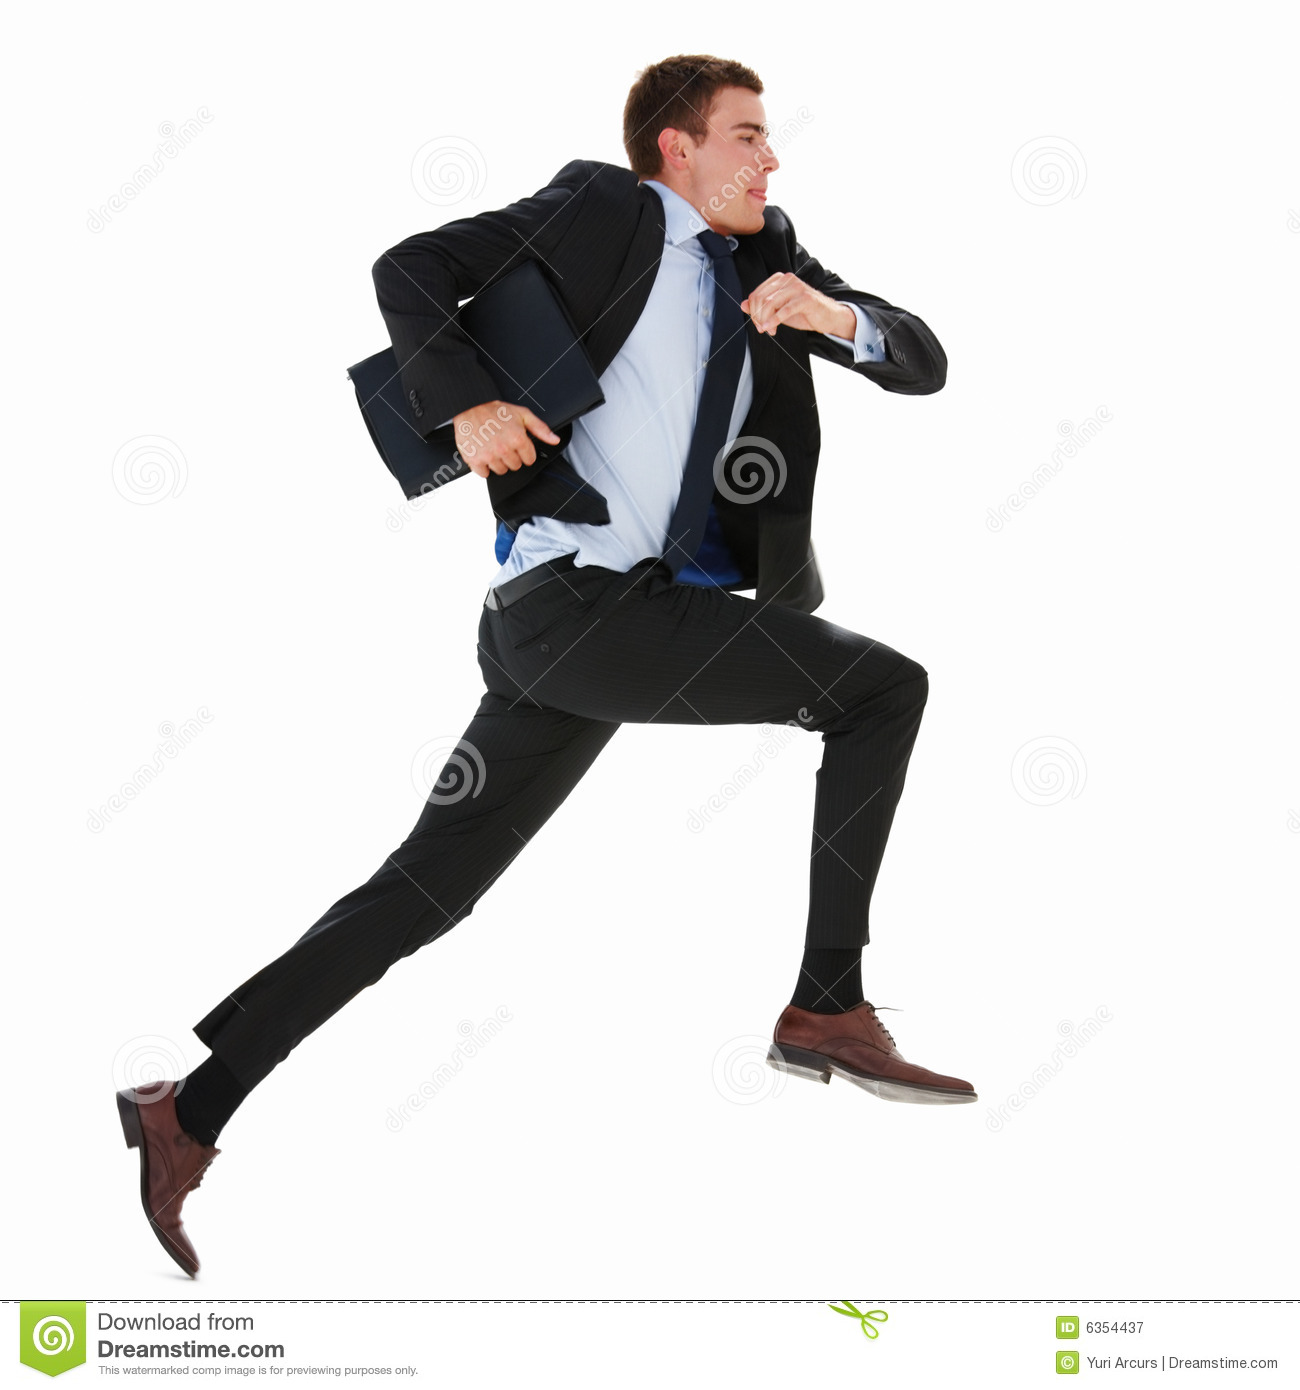 business-man-running-isolated-white-6354437.jpg